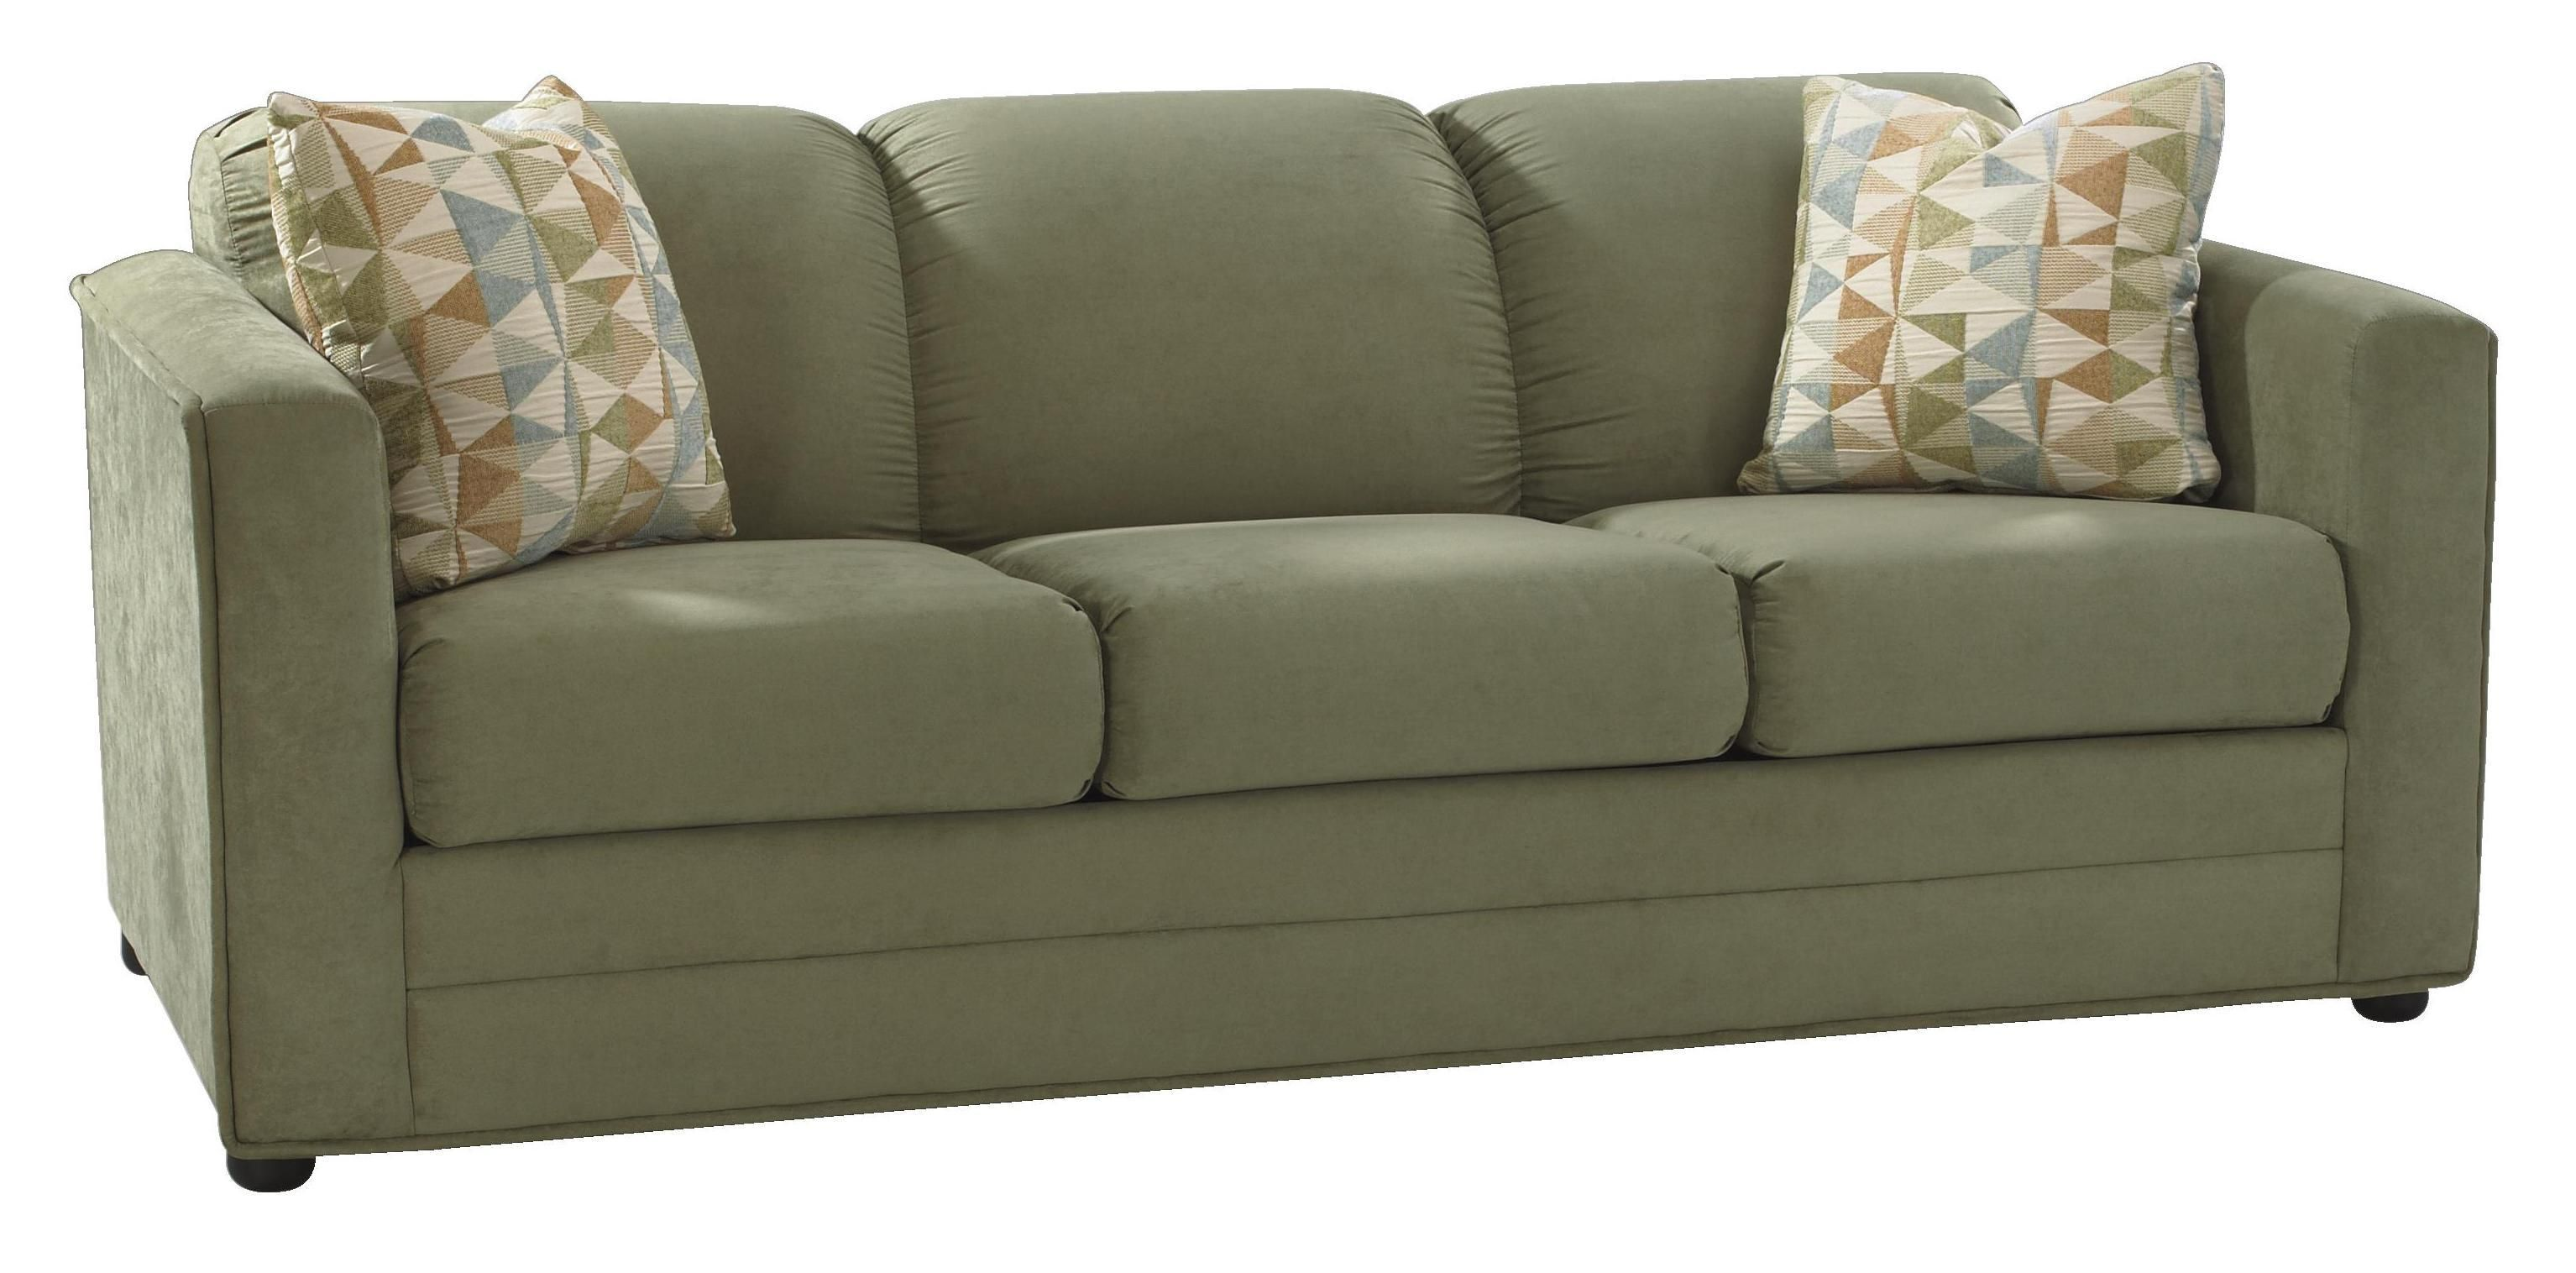 Weekends Royale Queen Sleeper By Klaussner Love Seat Sofa Couch